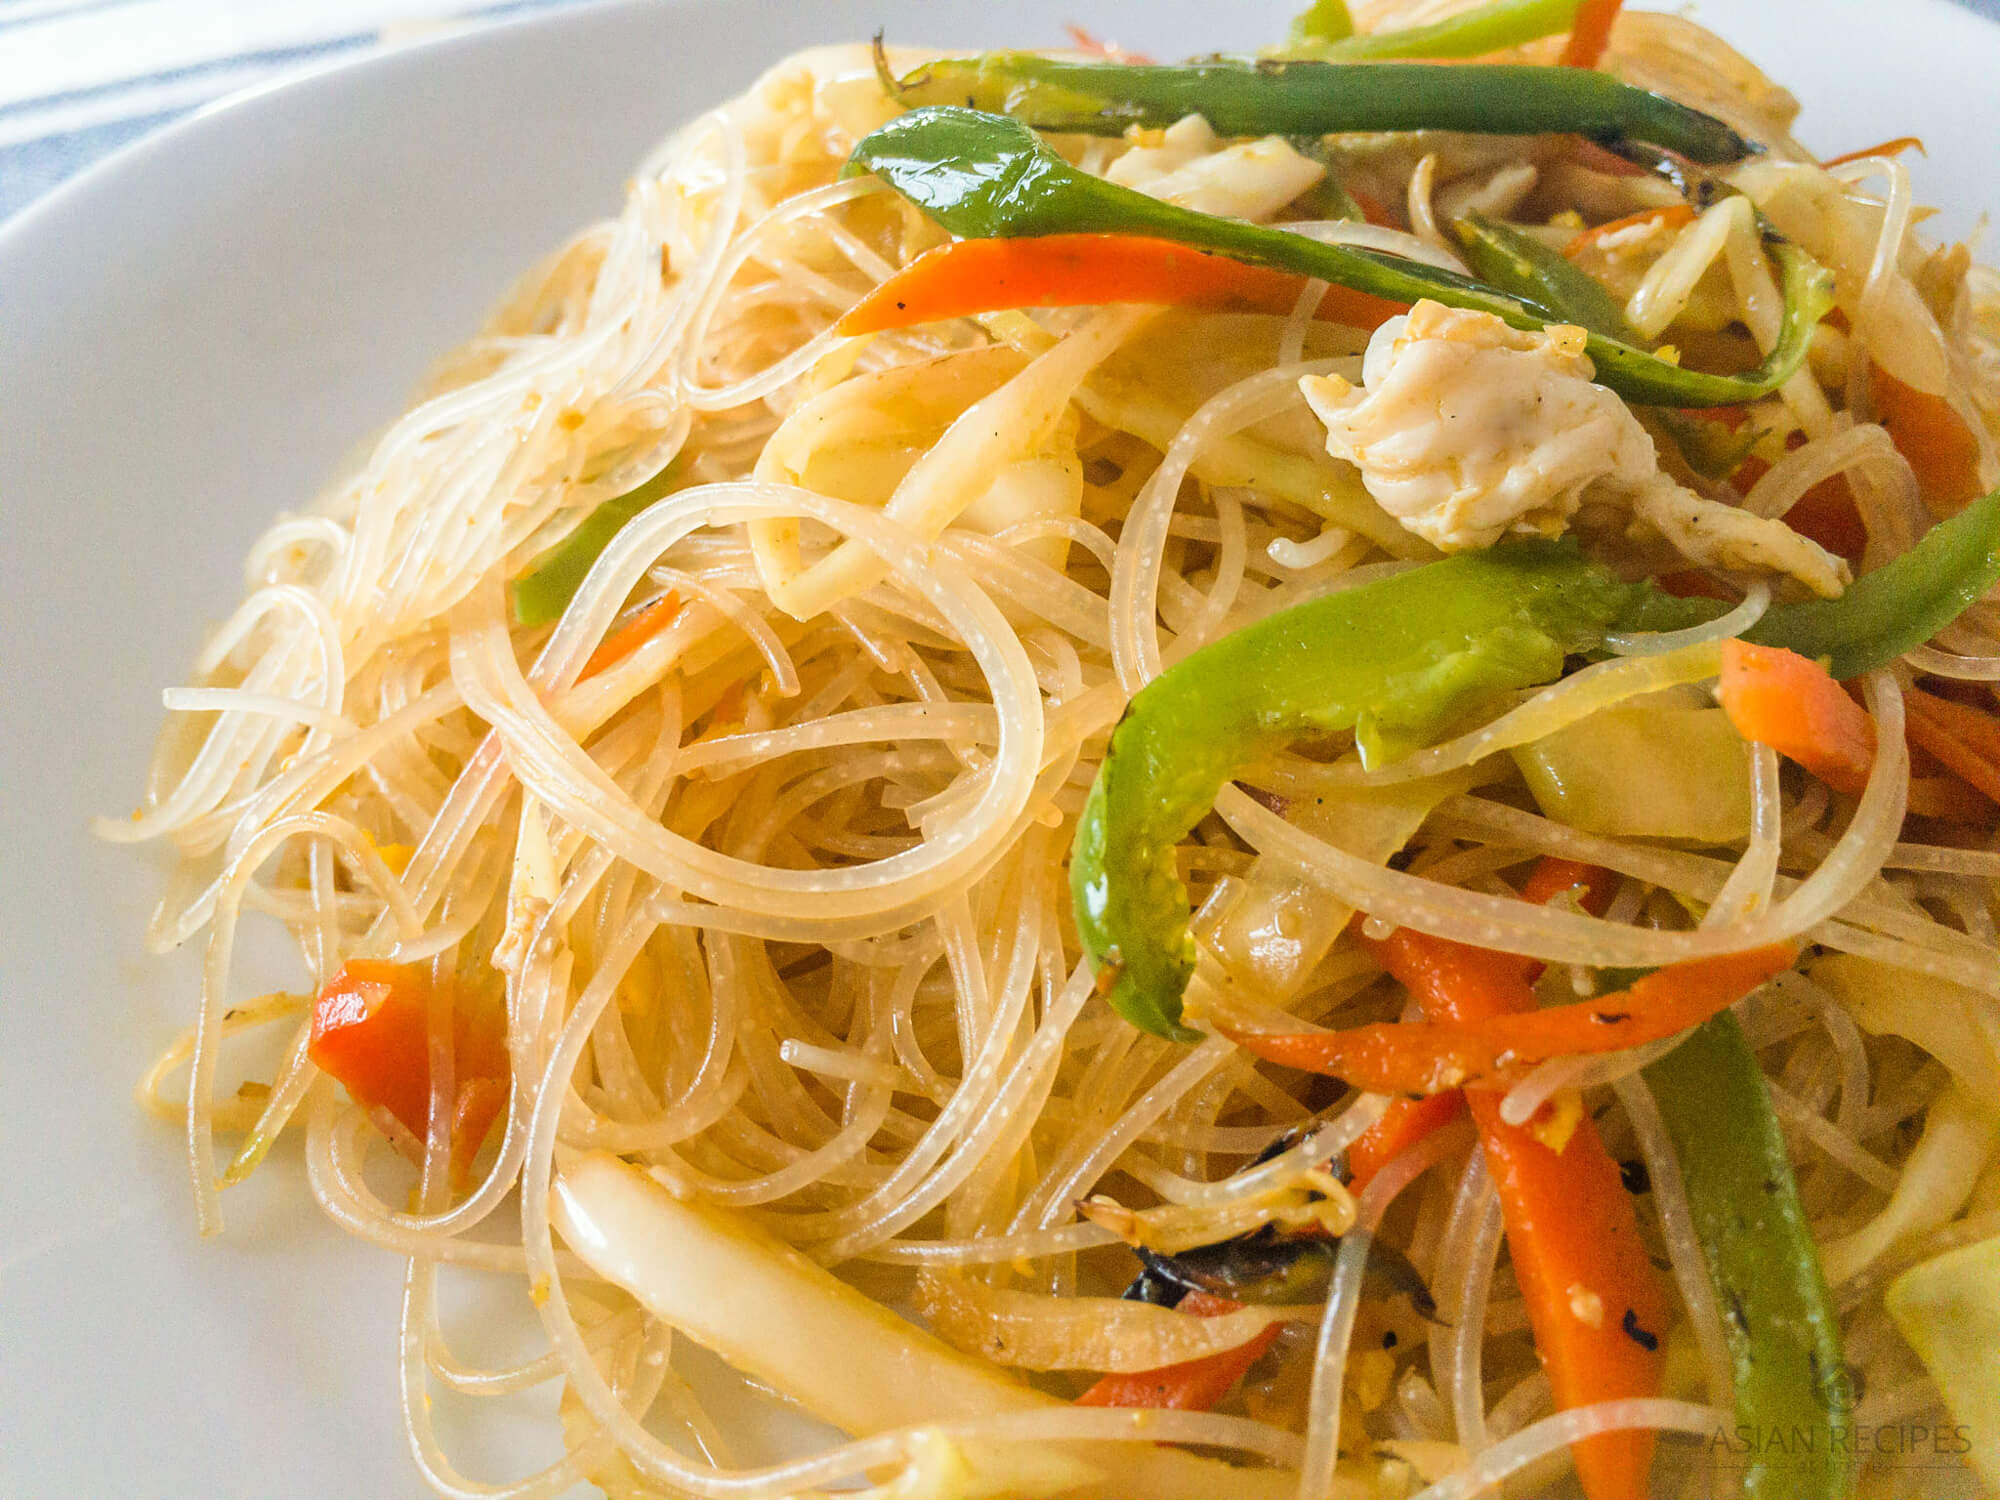 Close up image of our stir-fried rice noodles with vegetables.